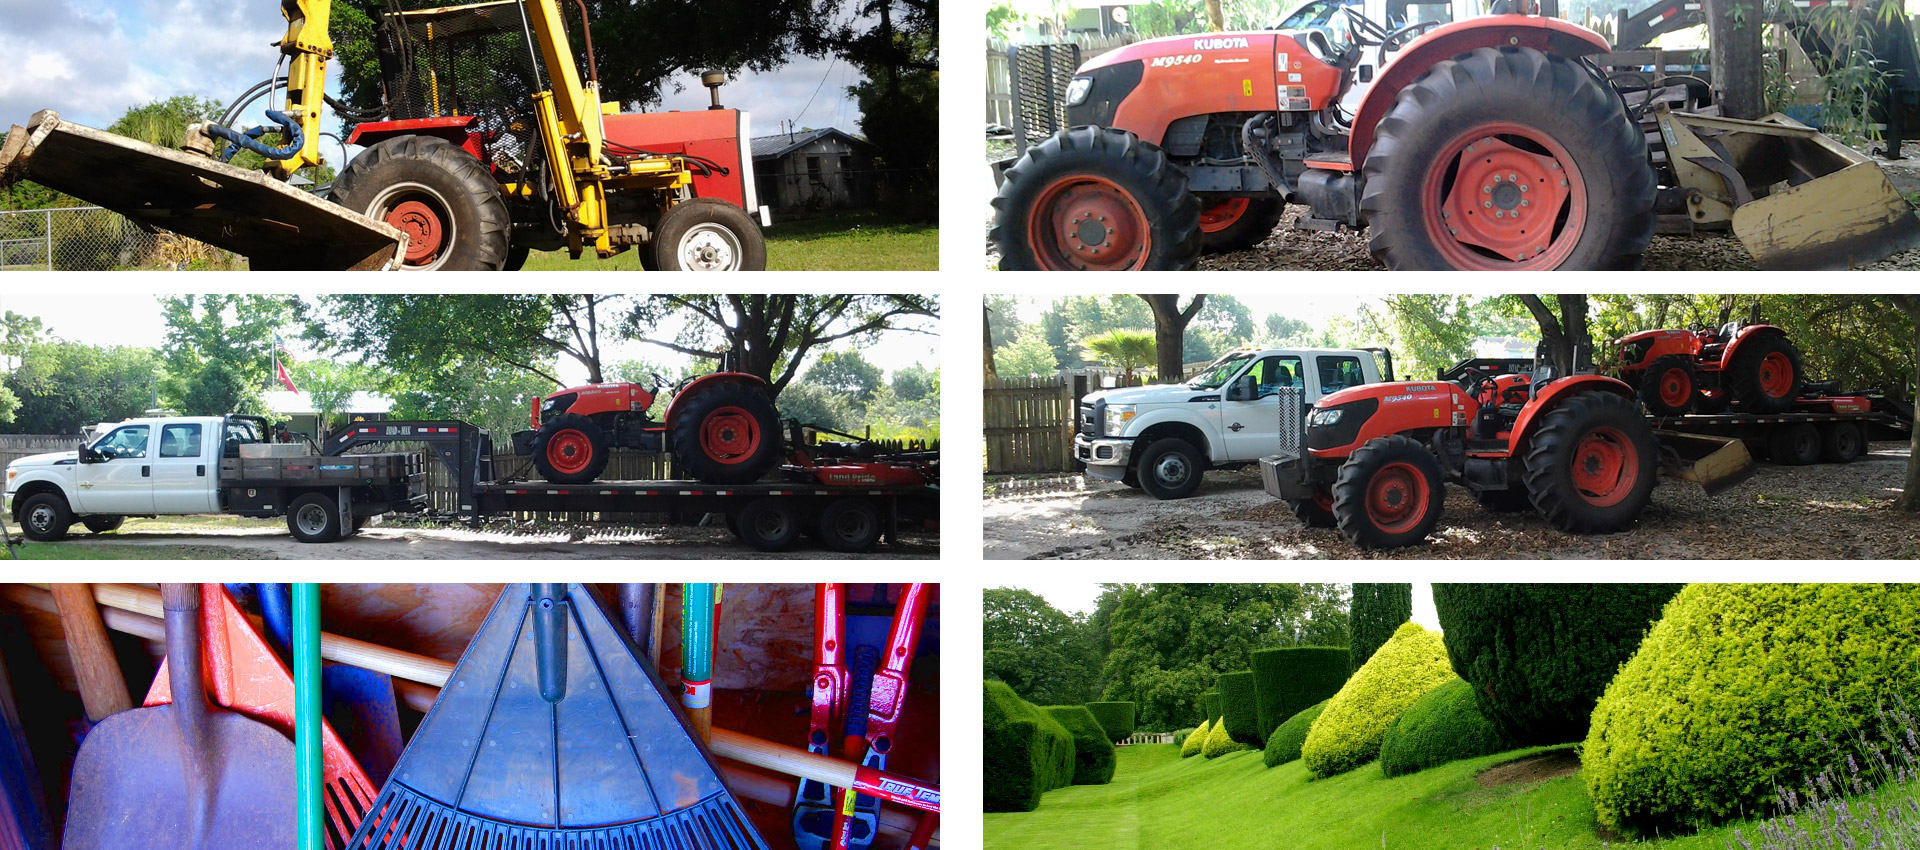 Dennis DeWolf Tractors LLC: Brush Hog Mowing, Land Clearing and Ditch Maintenance in Tampa Bay, St. Petersburg and Wesley Chapel